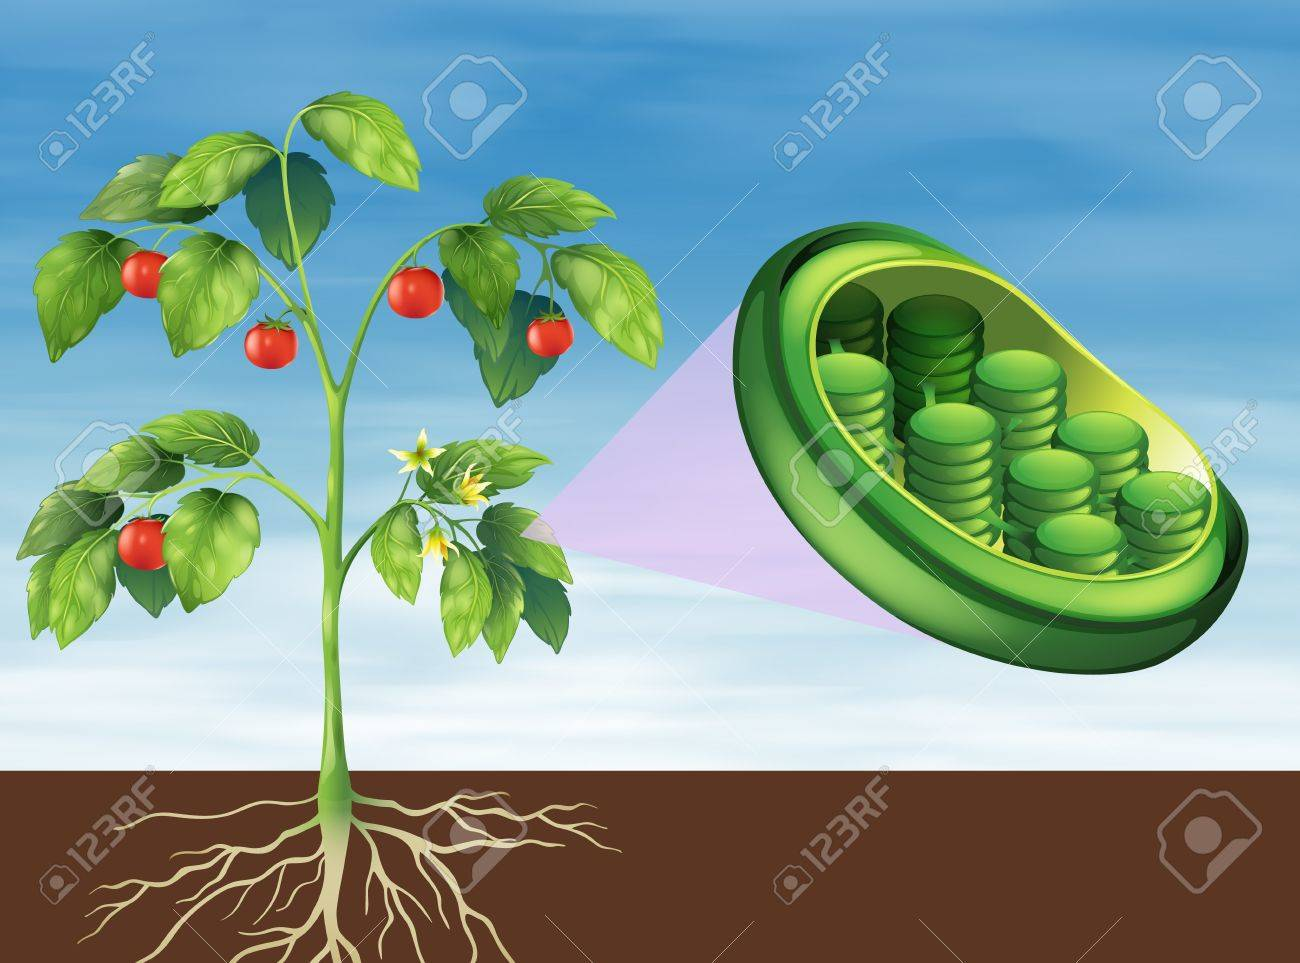 Illustration of a Chloroplast in plant Stock Vector - 20679995